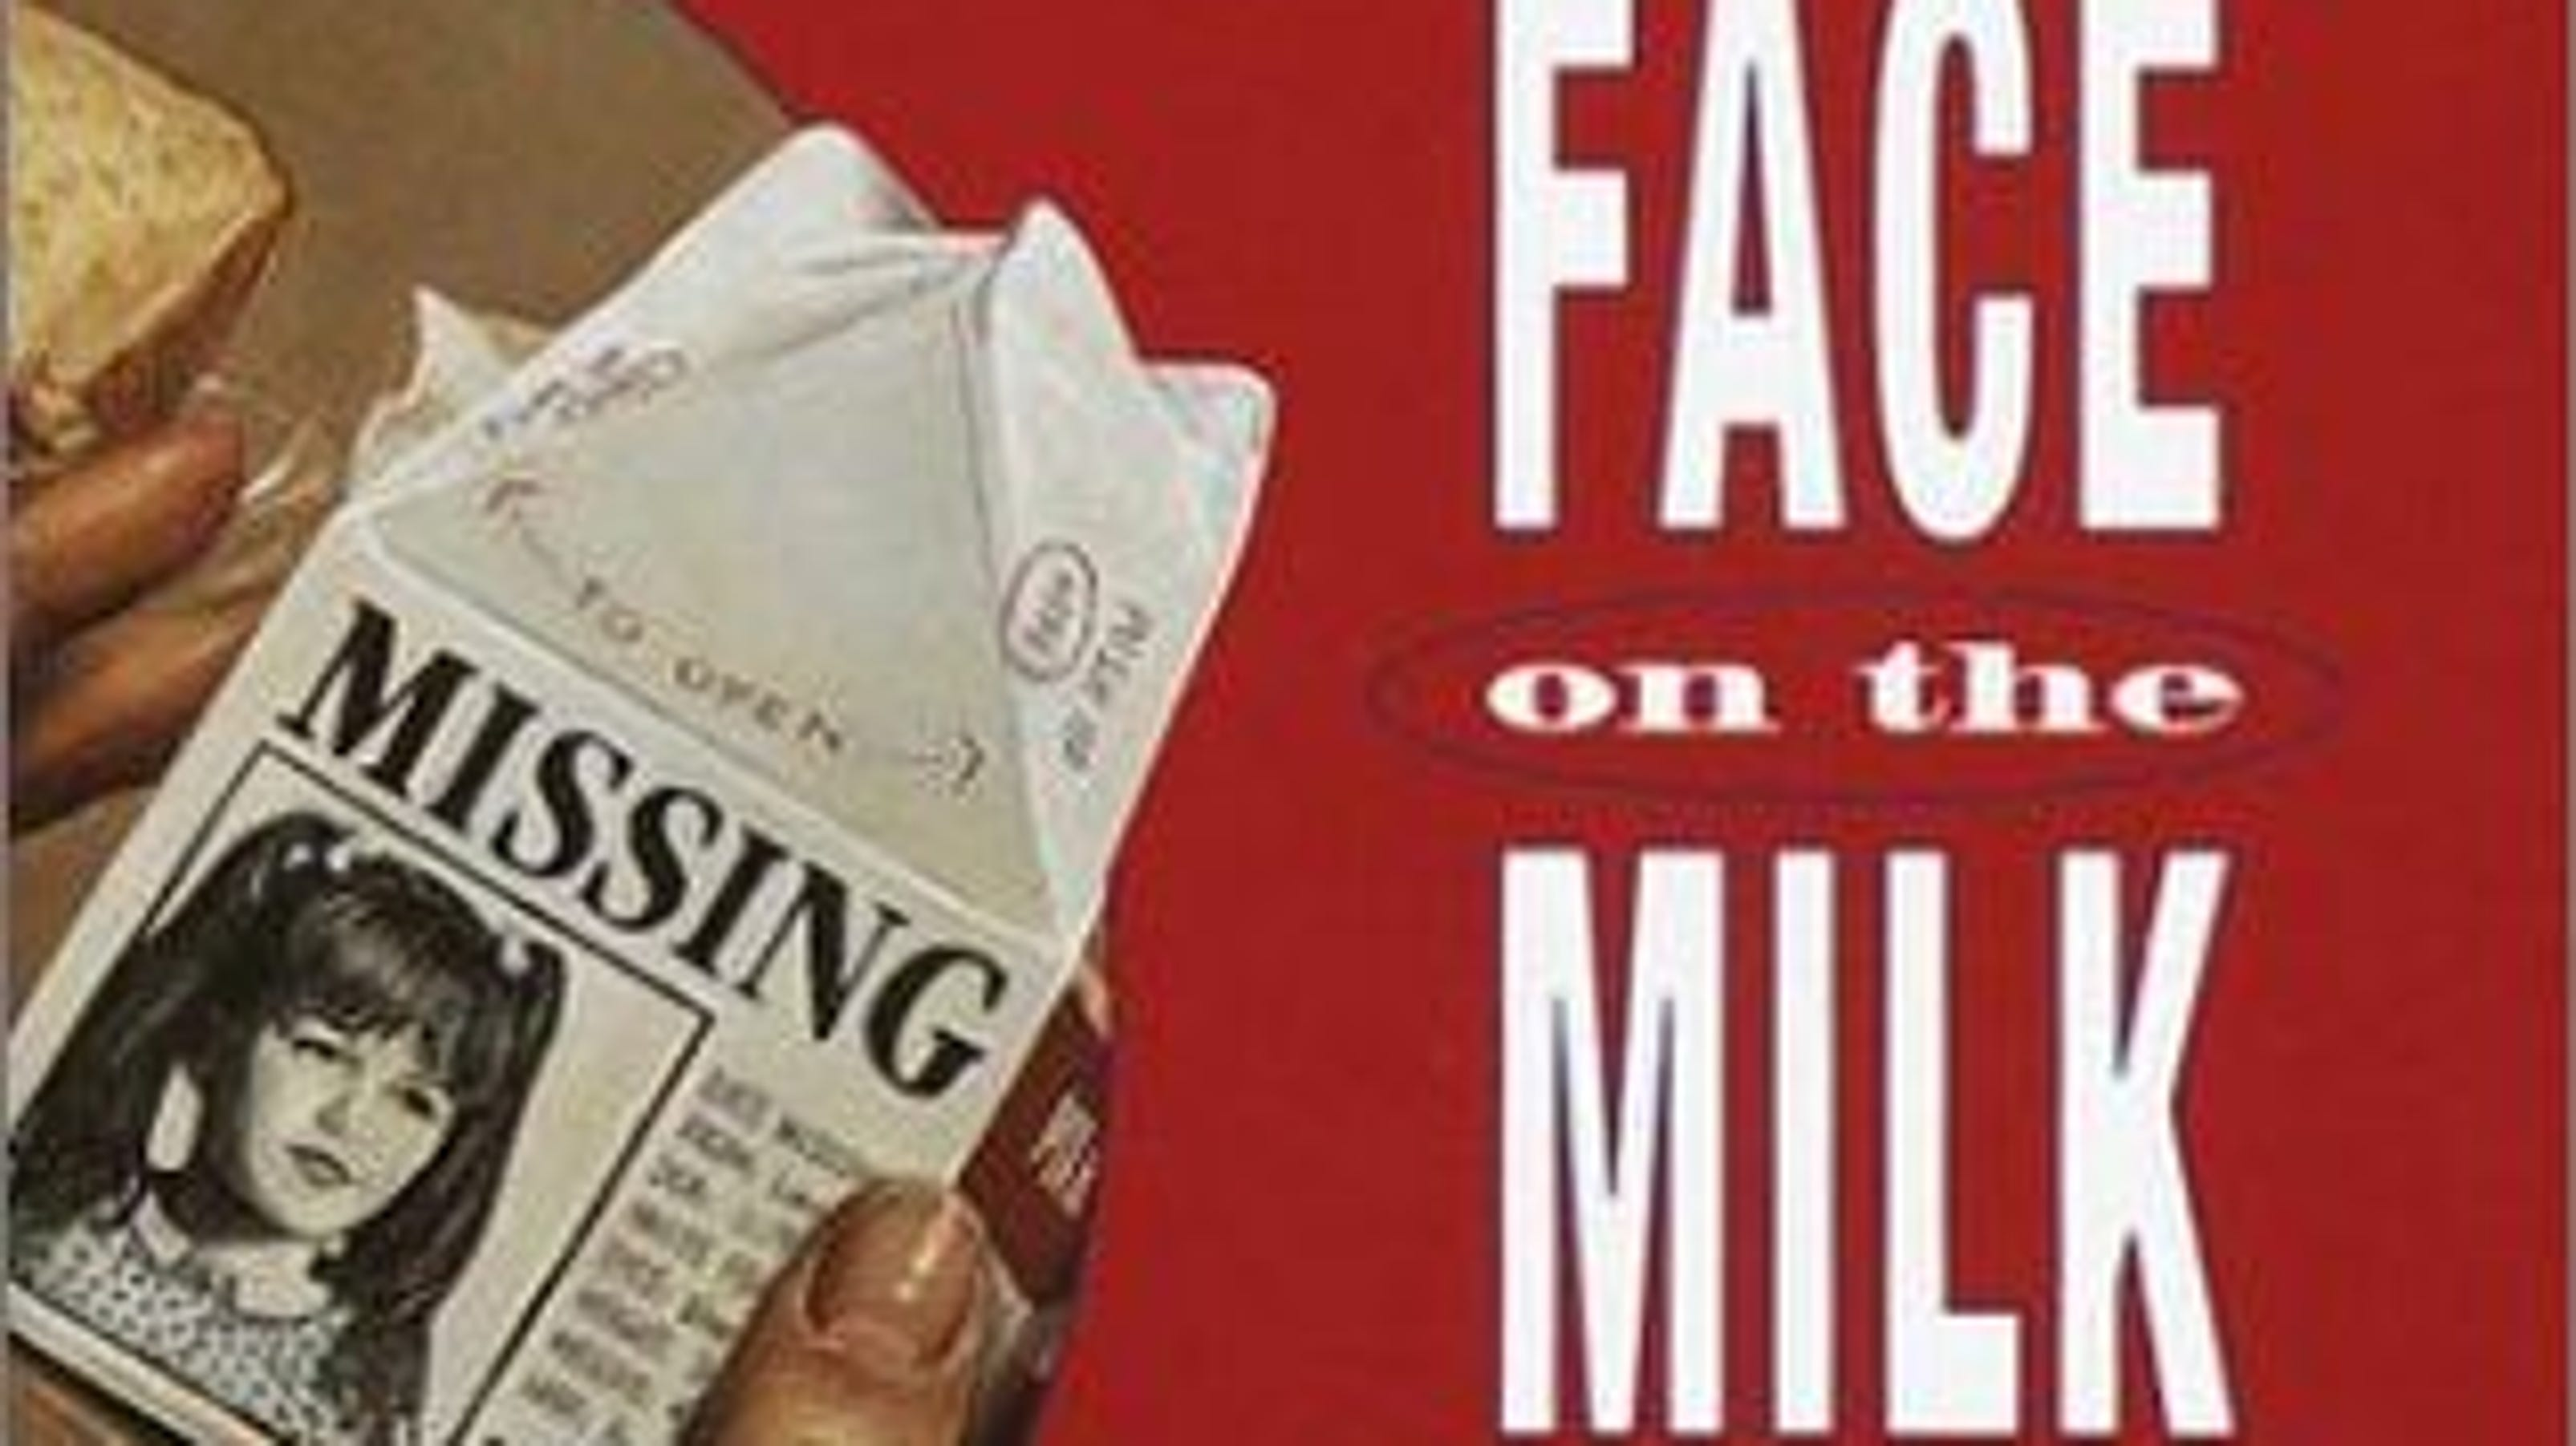 Pictures of the face on milk carton